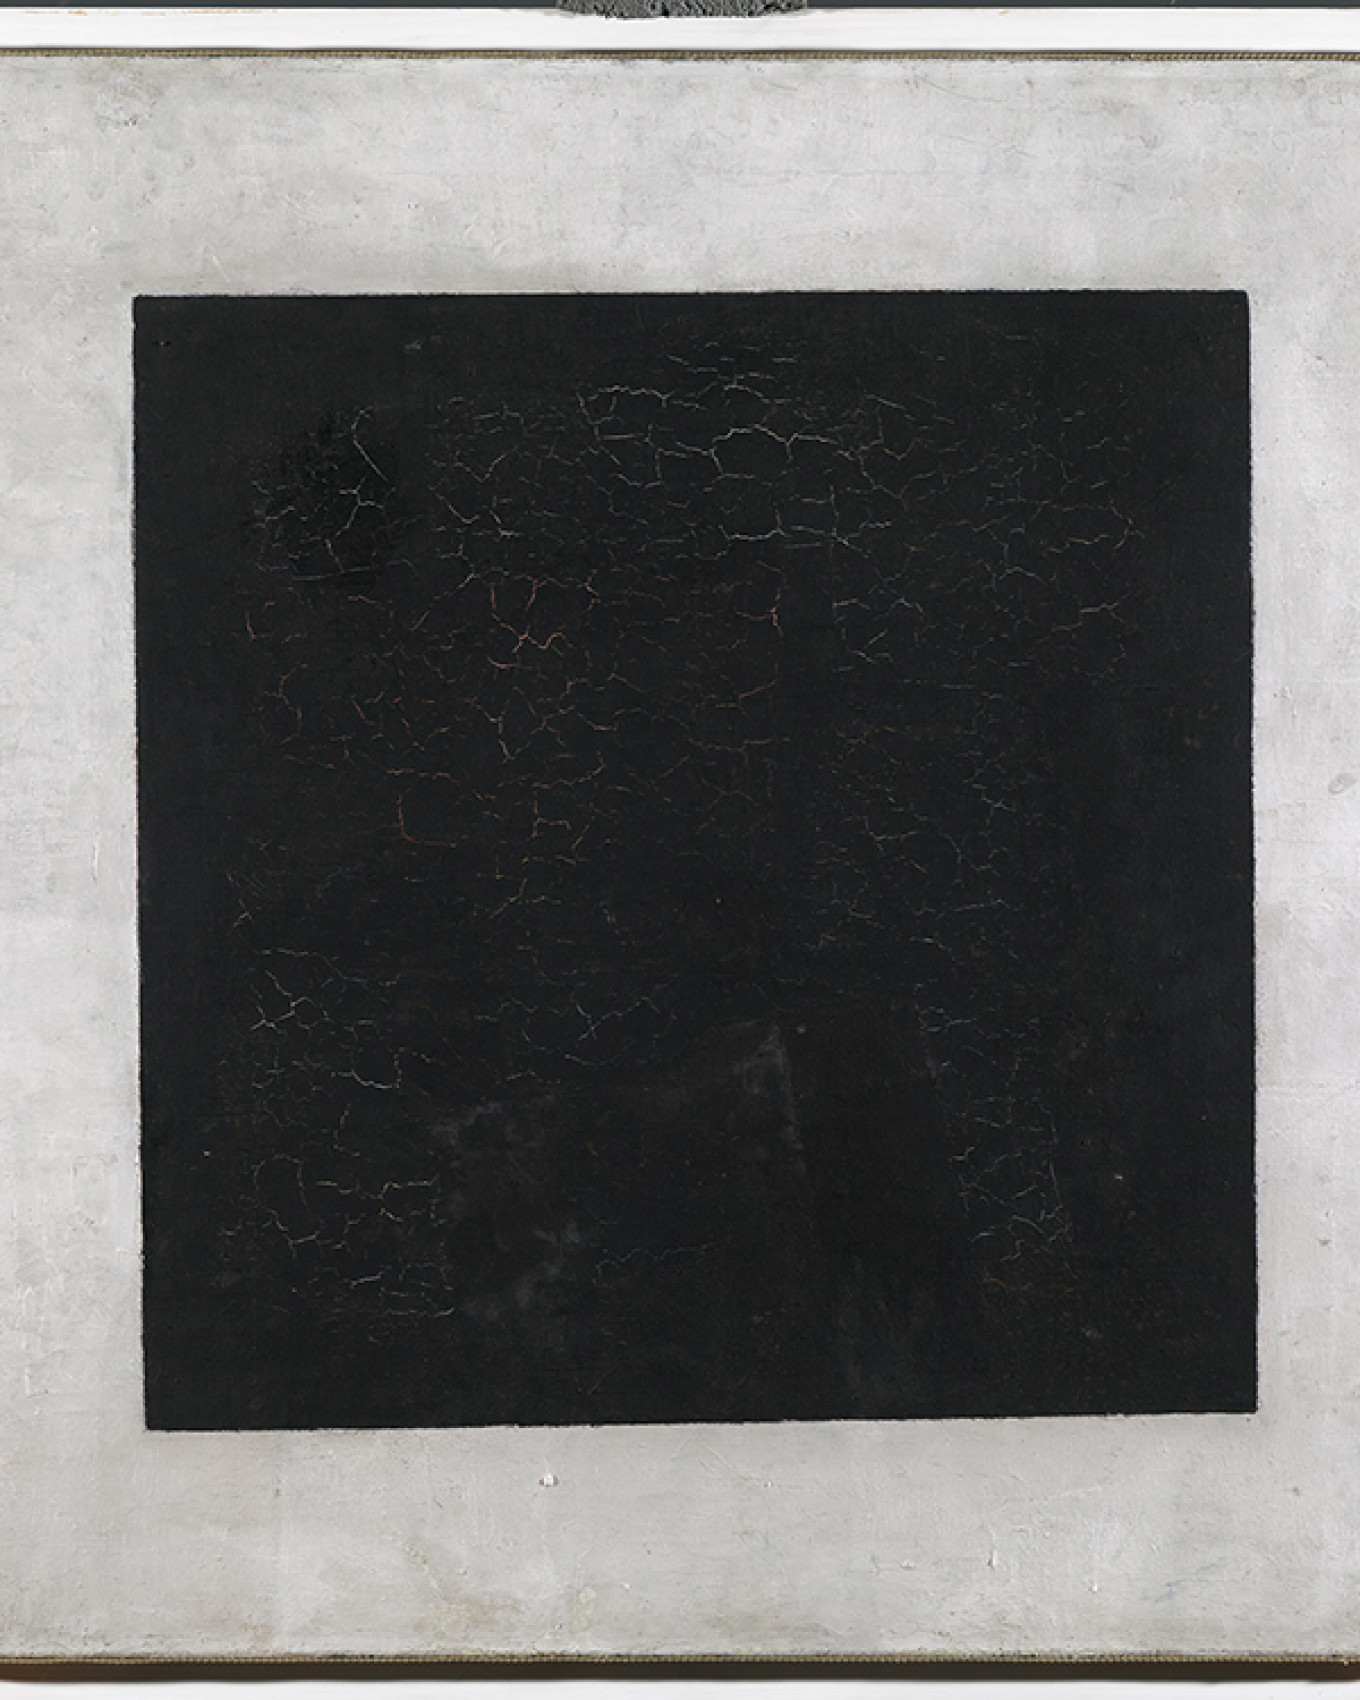 """Black Square,"" Kazimir Malevich, 1915				 				Courtesy of the State Tretyakov Gallery"